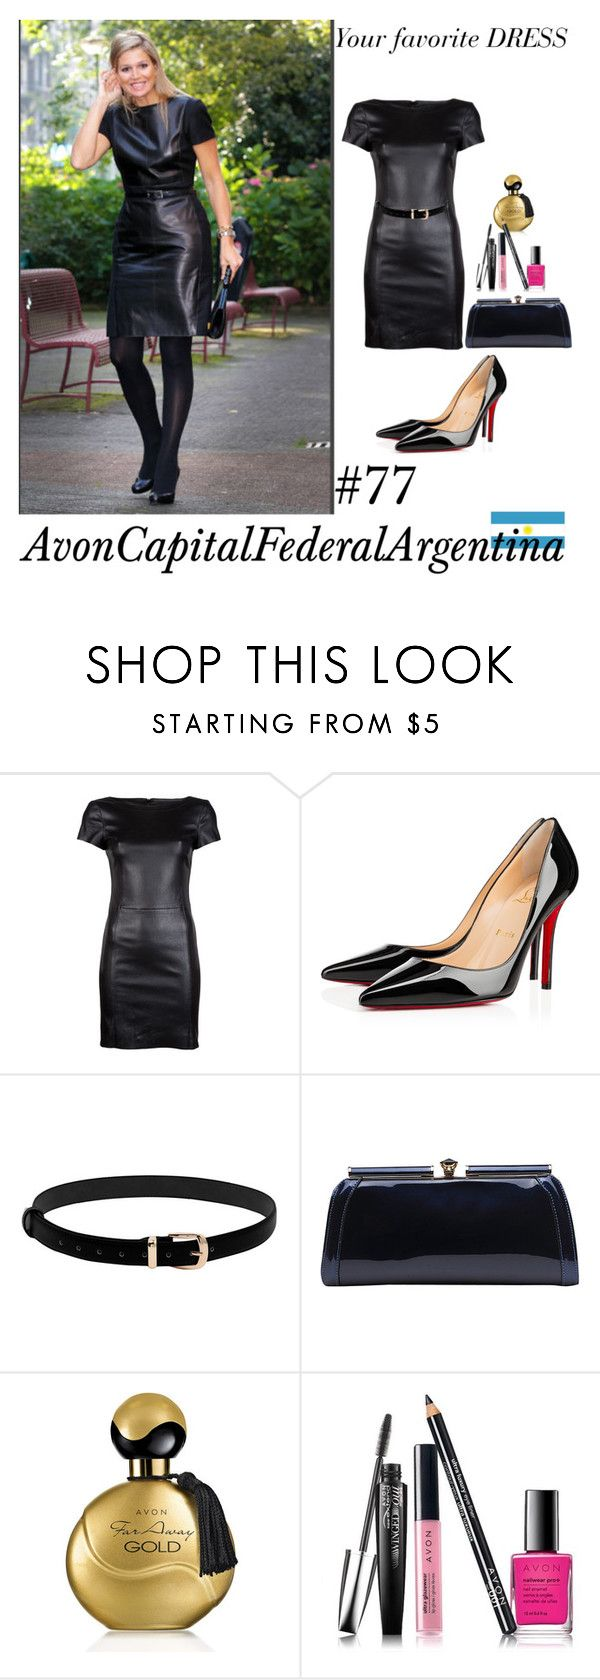 """""""Your favorite DRESS"""" by avon-capital-federal-argentina ❤ liked on Polyvore featuring Drome, Christian Louboutin, MKF Collection, Avon, Argentina, 2016, maxima and yourfavoritedress"""